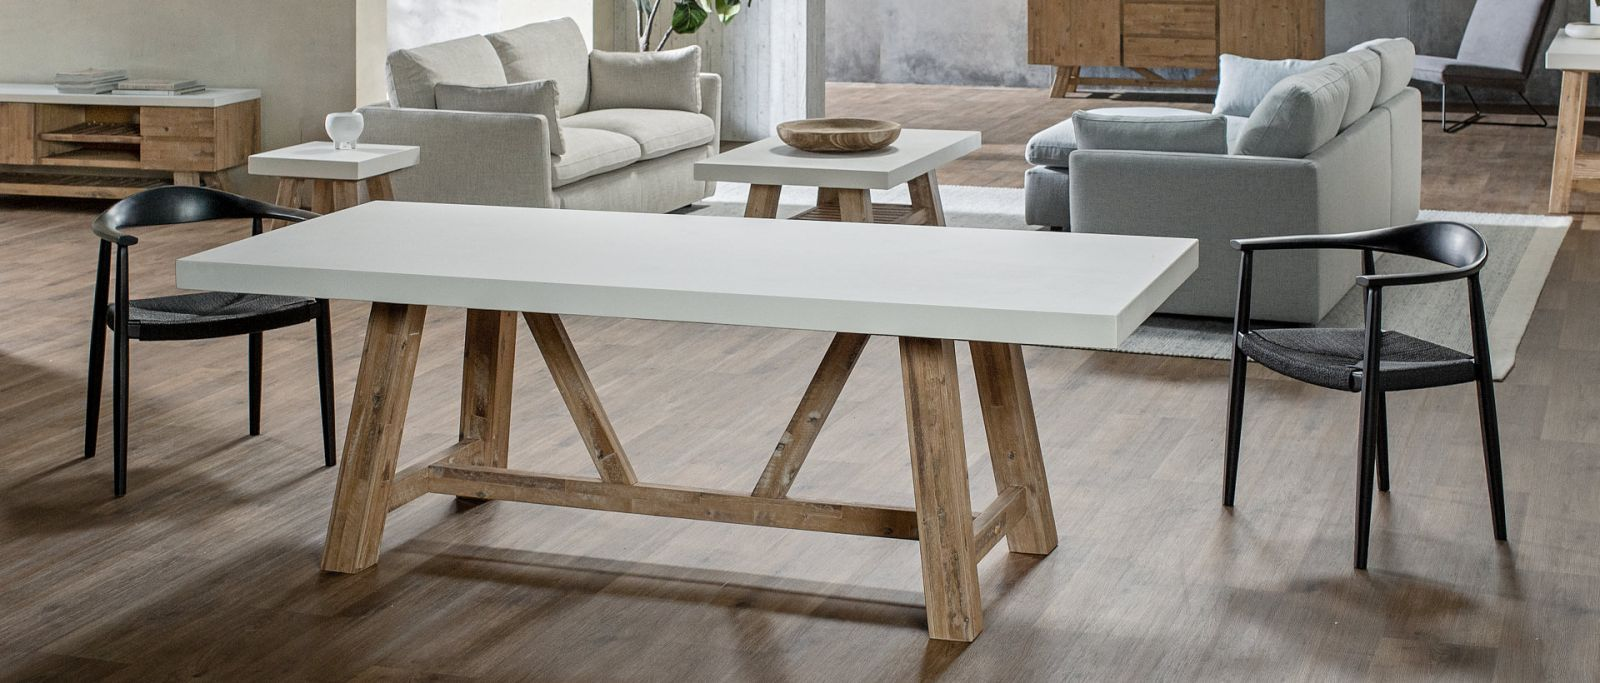 Browse Dining Tables Round Dining Tables Nick Scali 12 Seater Dining Table Round Dining Table Dining Table [ 683 x 1600 Pixel ]